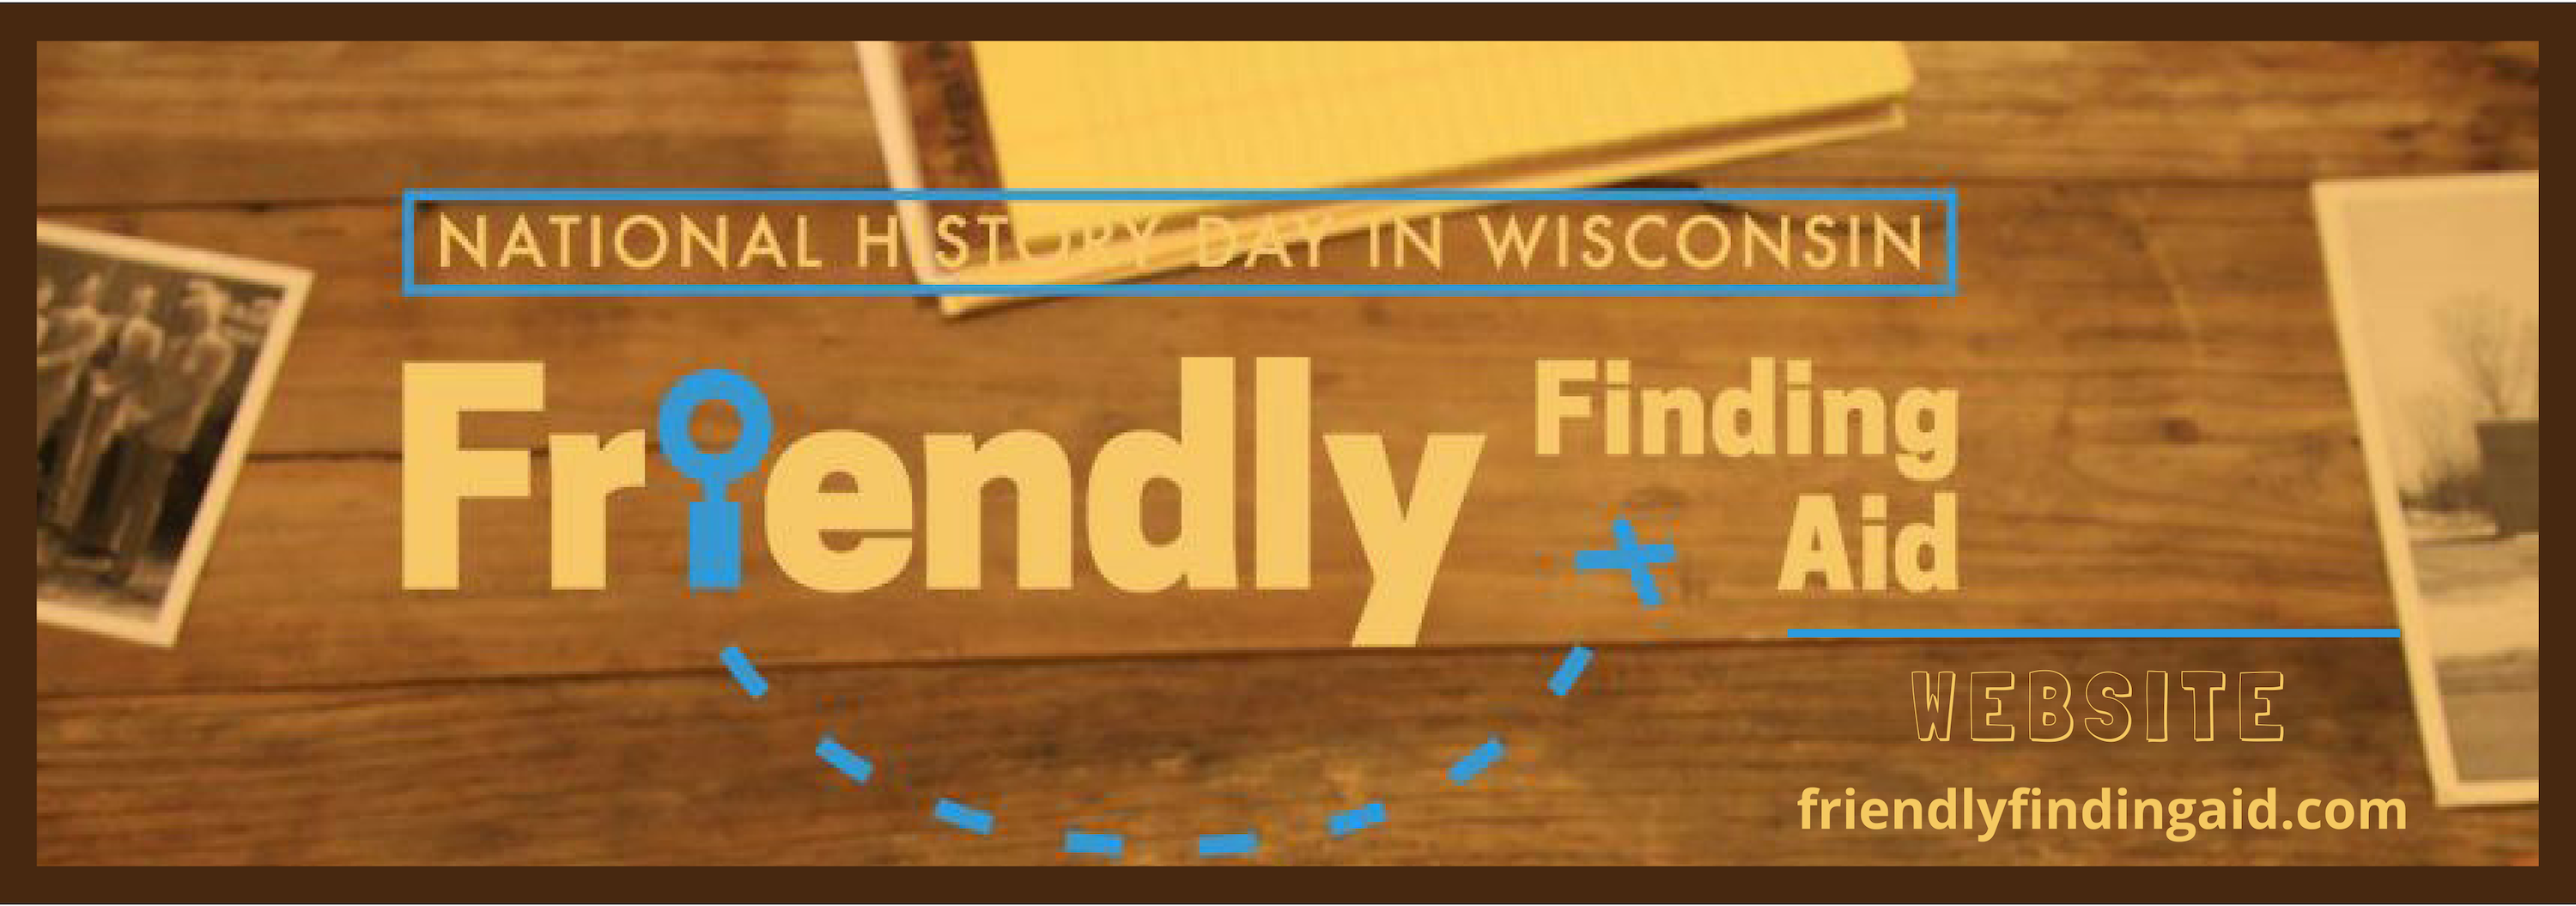 Friendly Finding Aid logo and website url